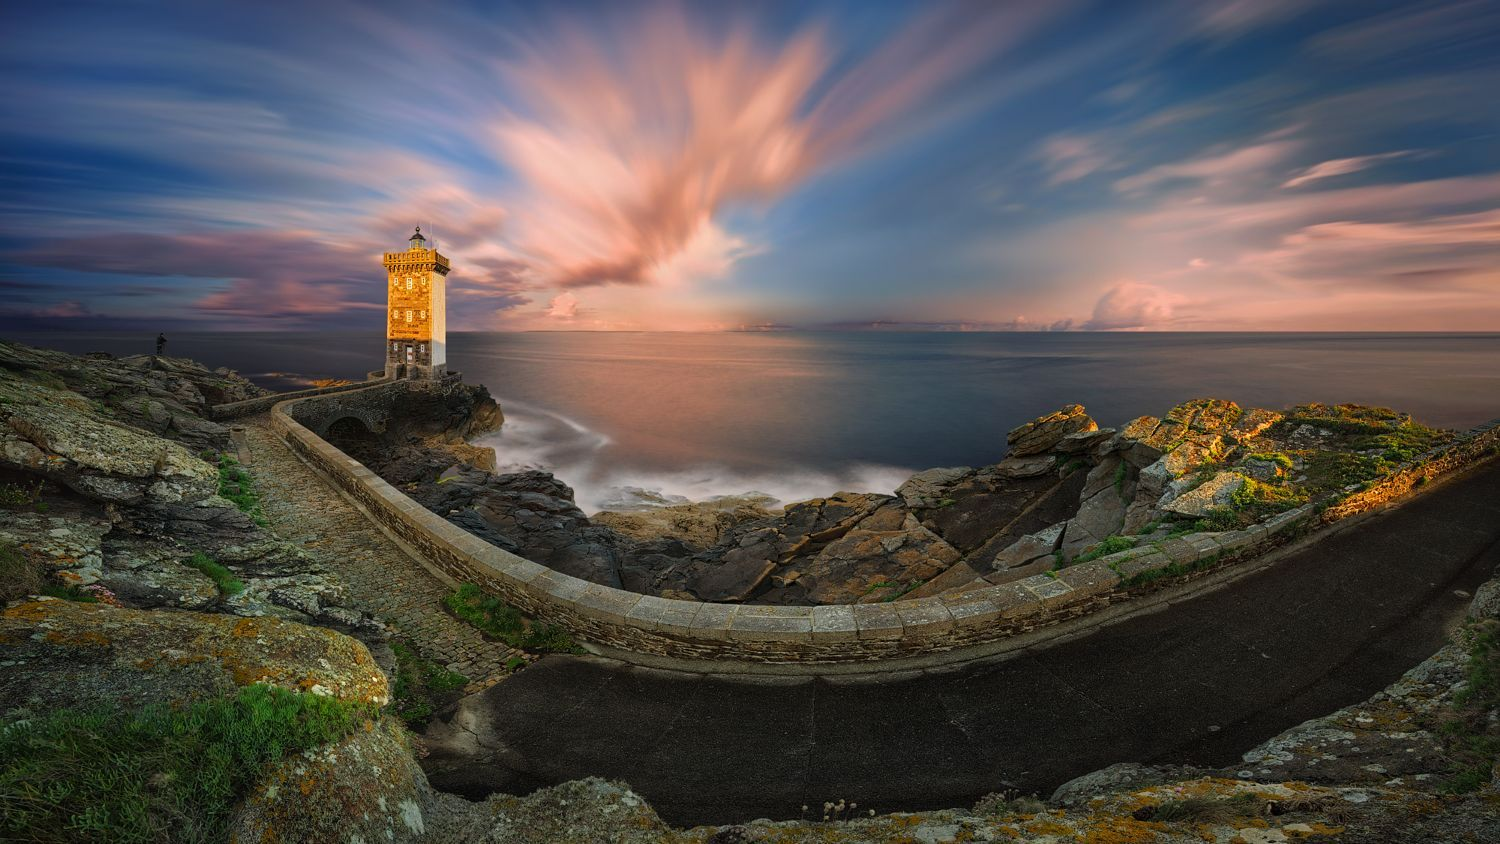 Good Morning Kermorvan... by Pawel Kucharski on 500px